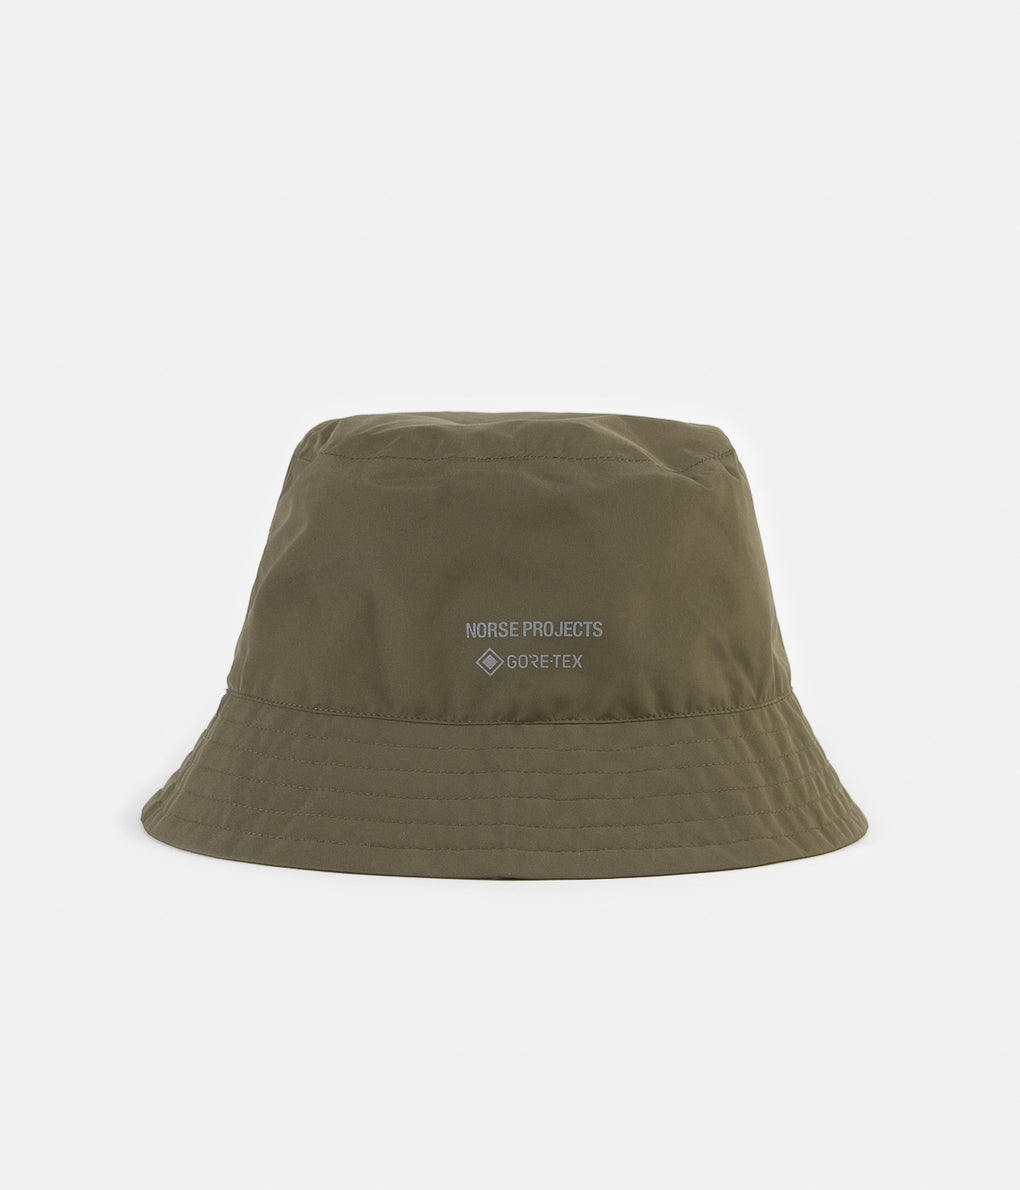 Norse Projects Gore Tex Bucket Hat - Shale Stone